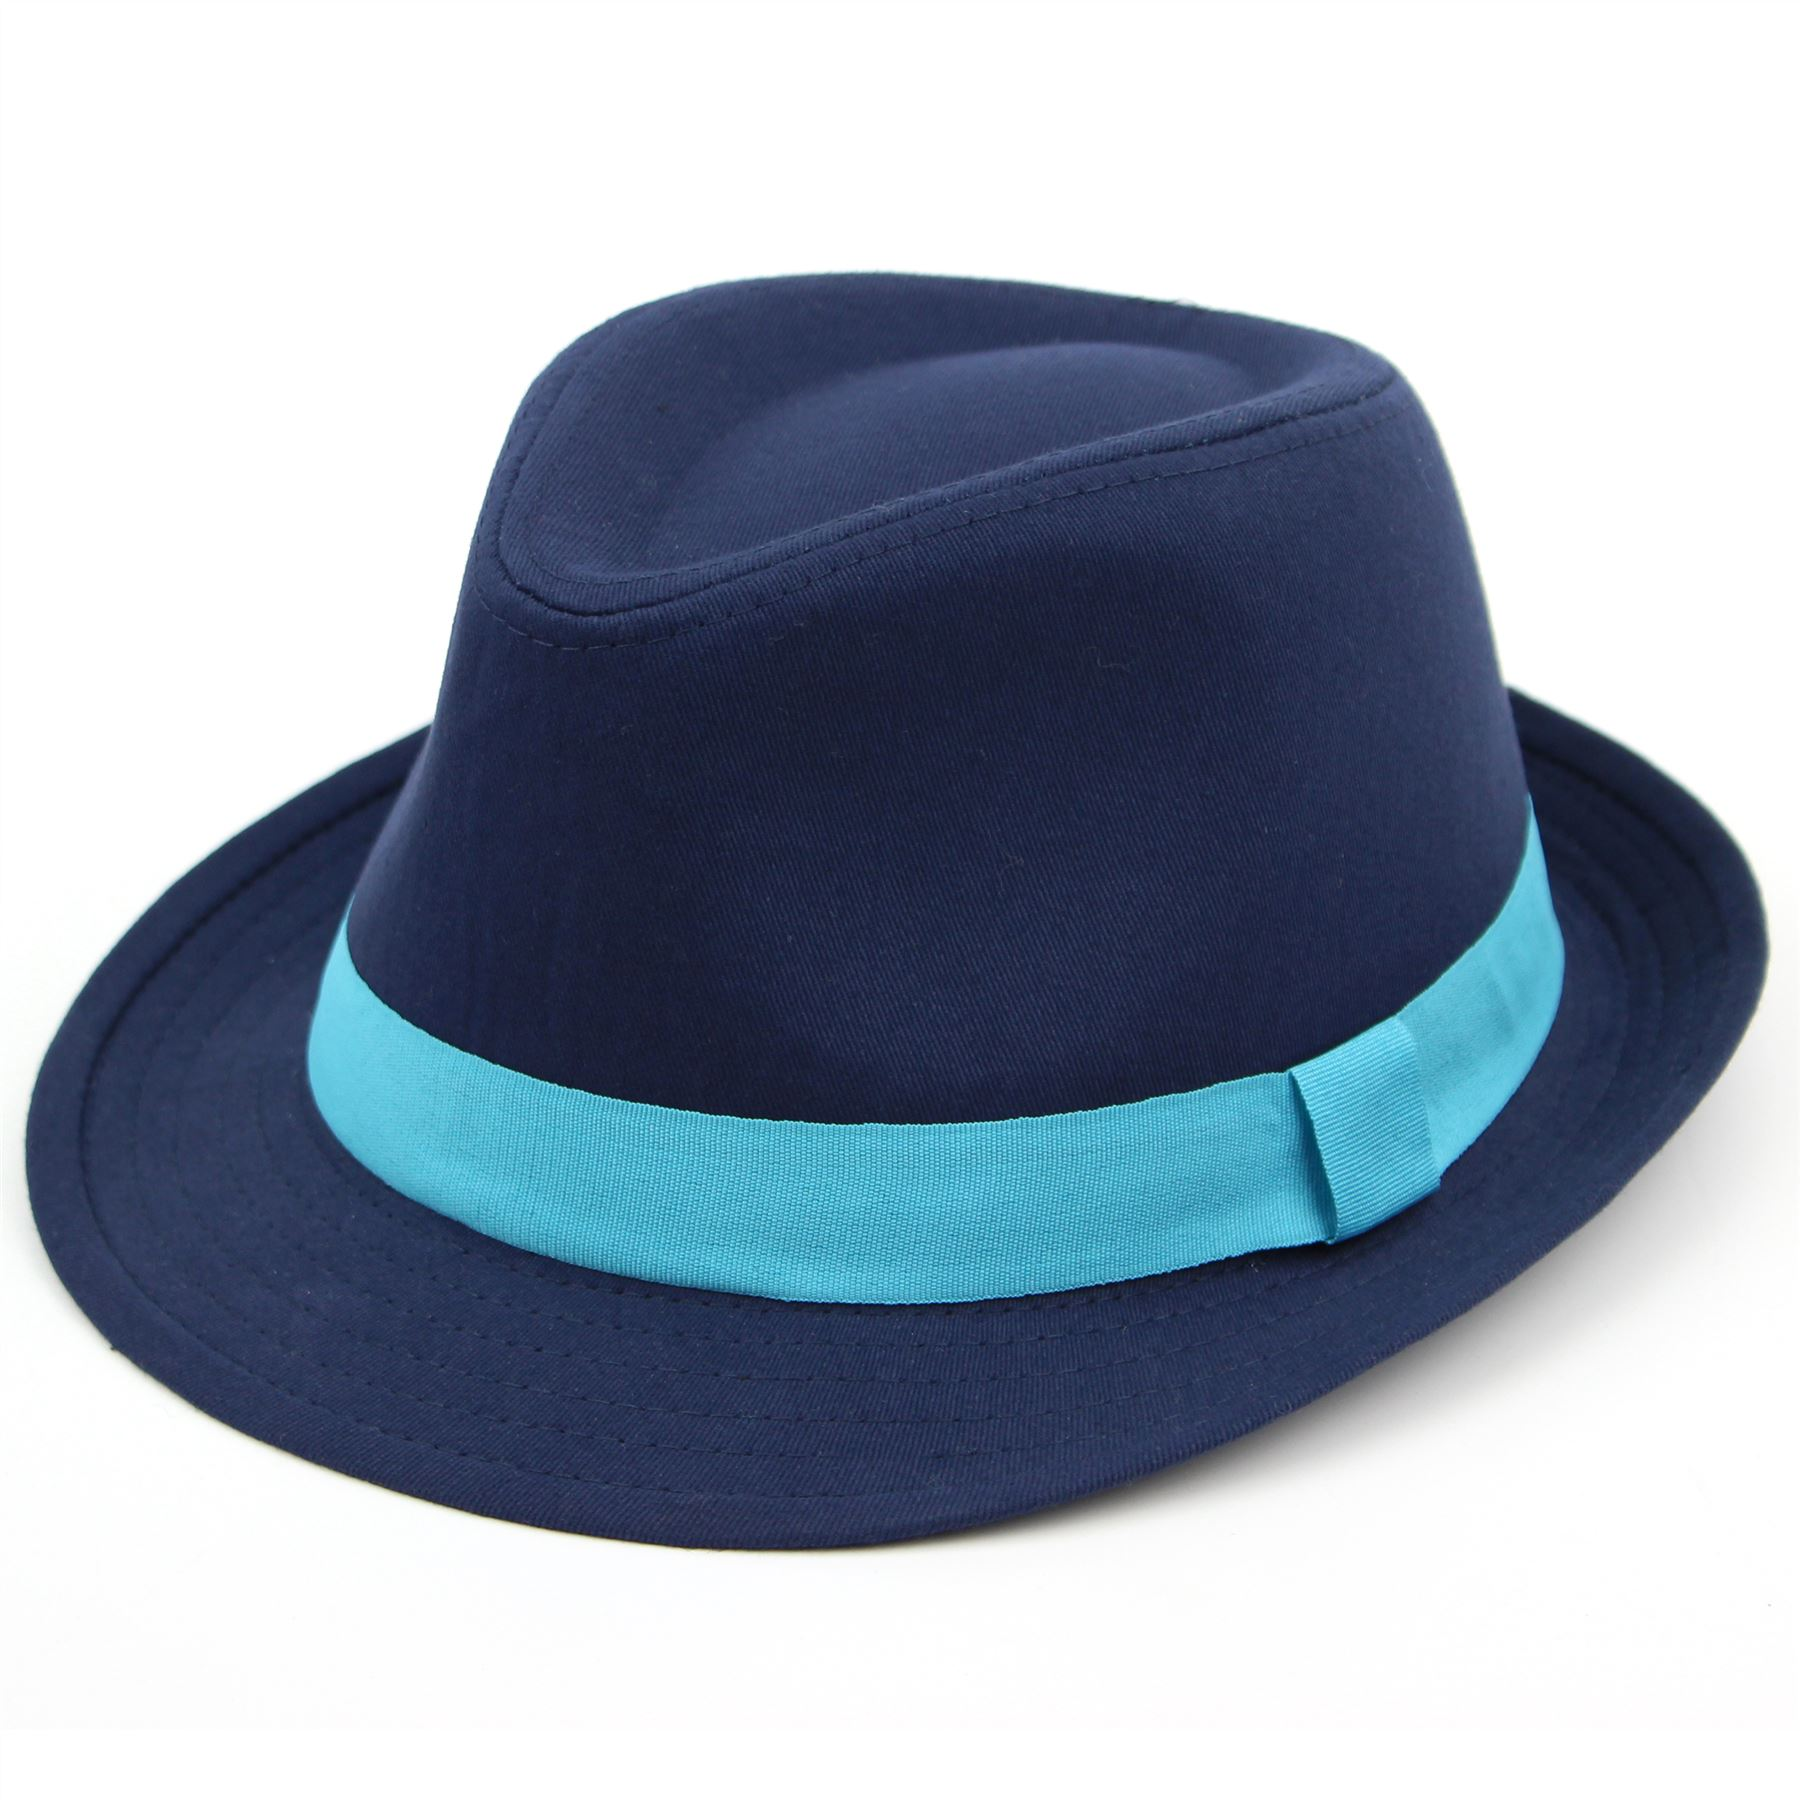 Details about Fedora Hat Cotton Bright Coloured Blue Pink Black New Band  Brim Cap Hawkins 5a6646fdce7